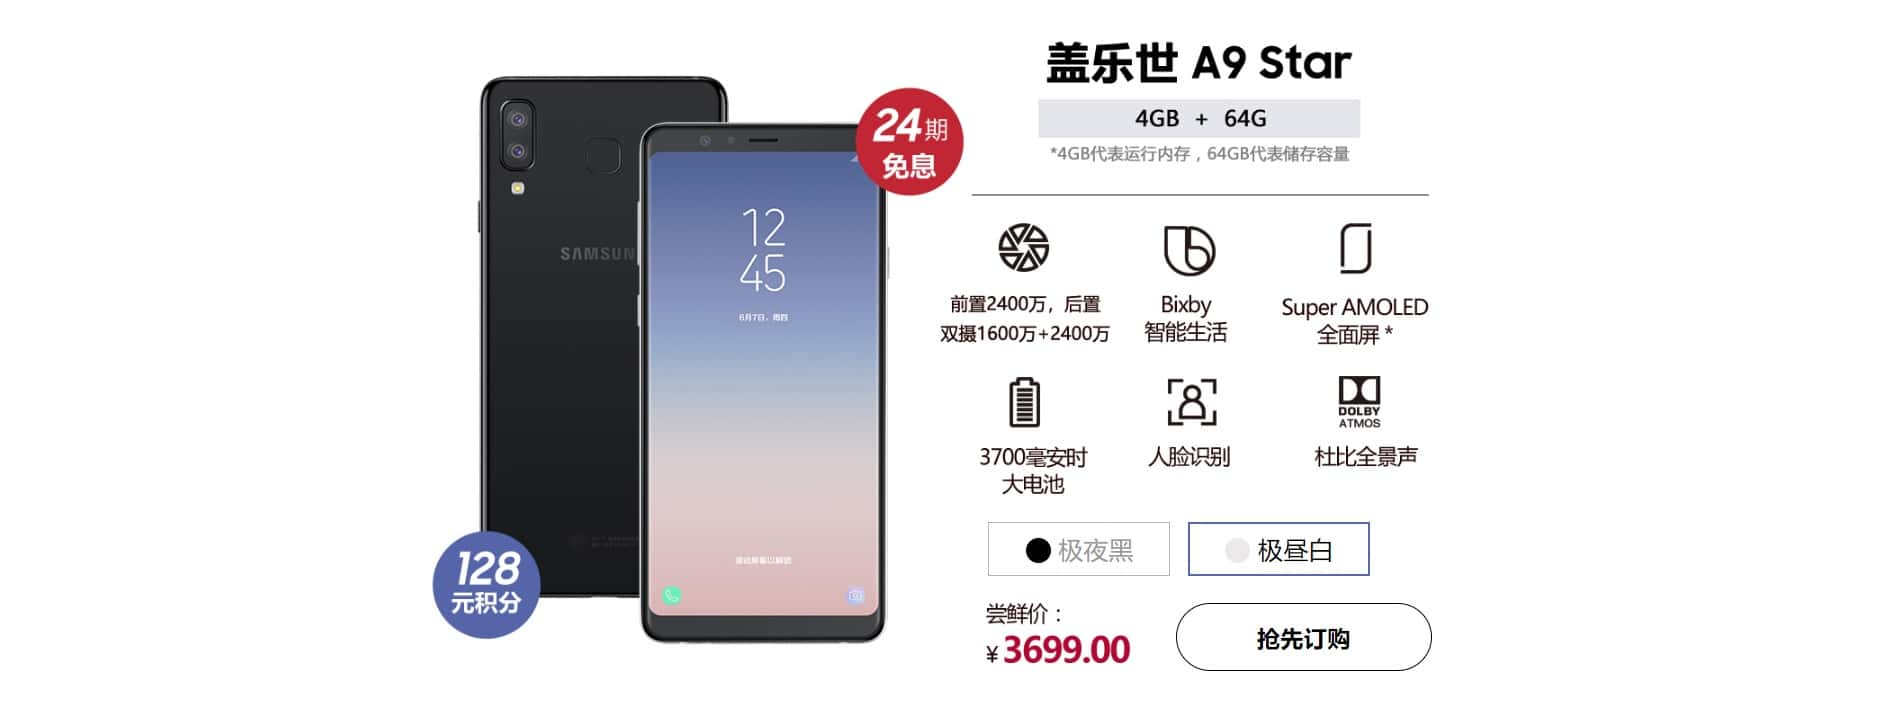 Samsung's Galaxy A9 Star Appears In China, Dual Cameras and Larger Batteries 6